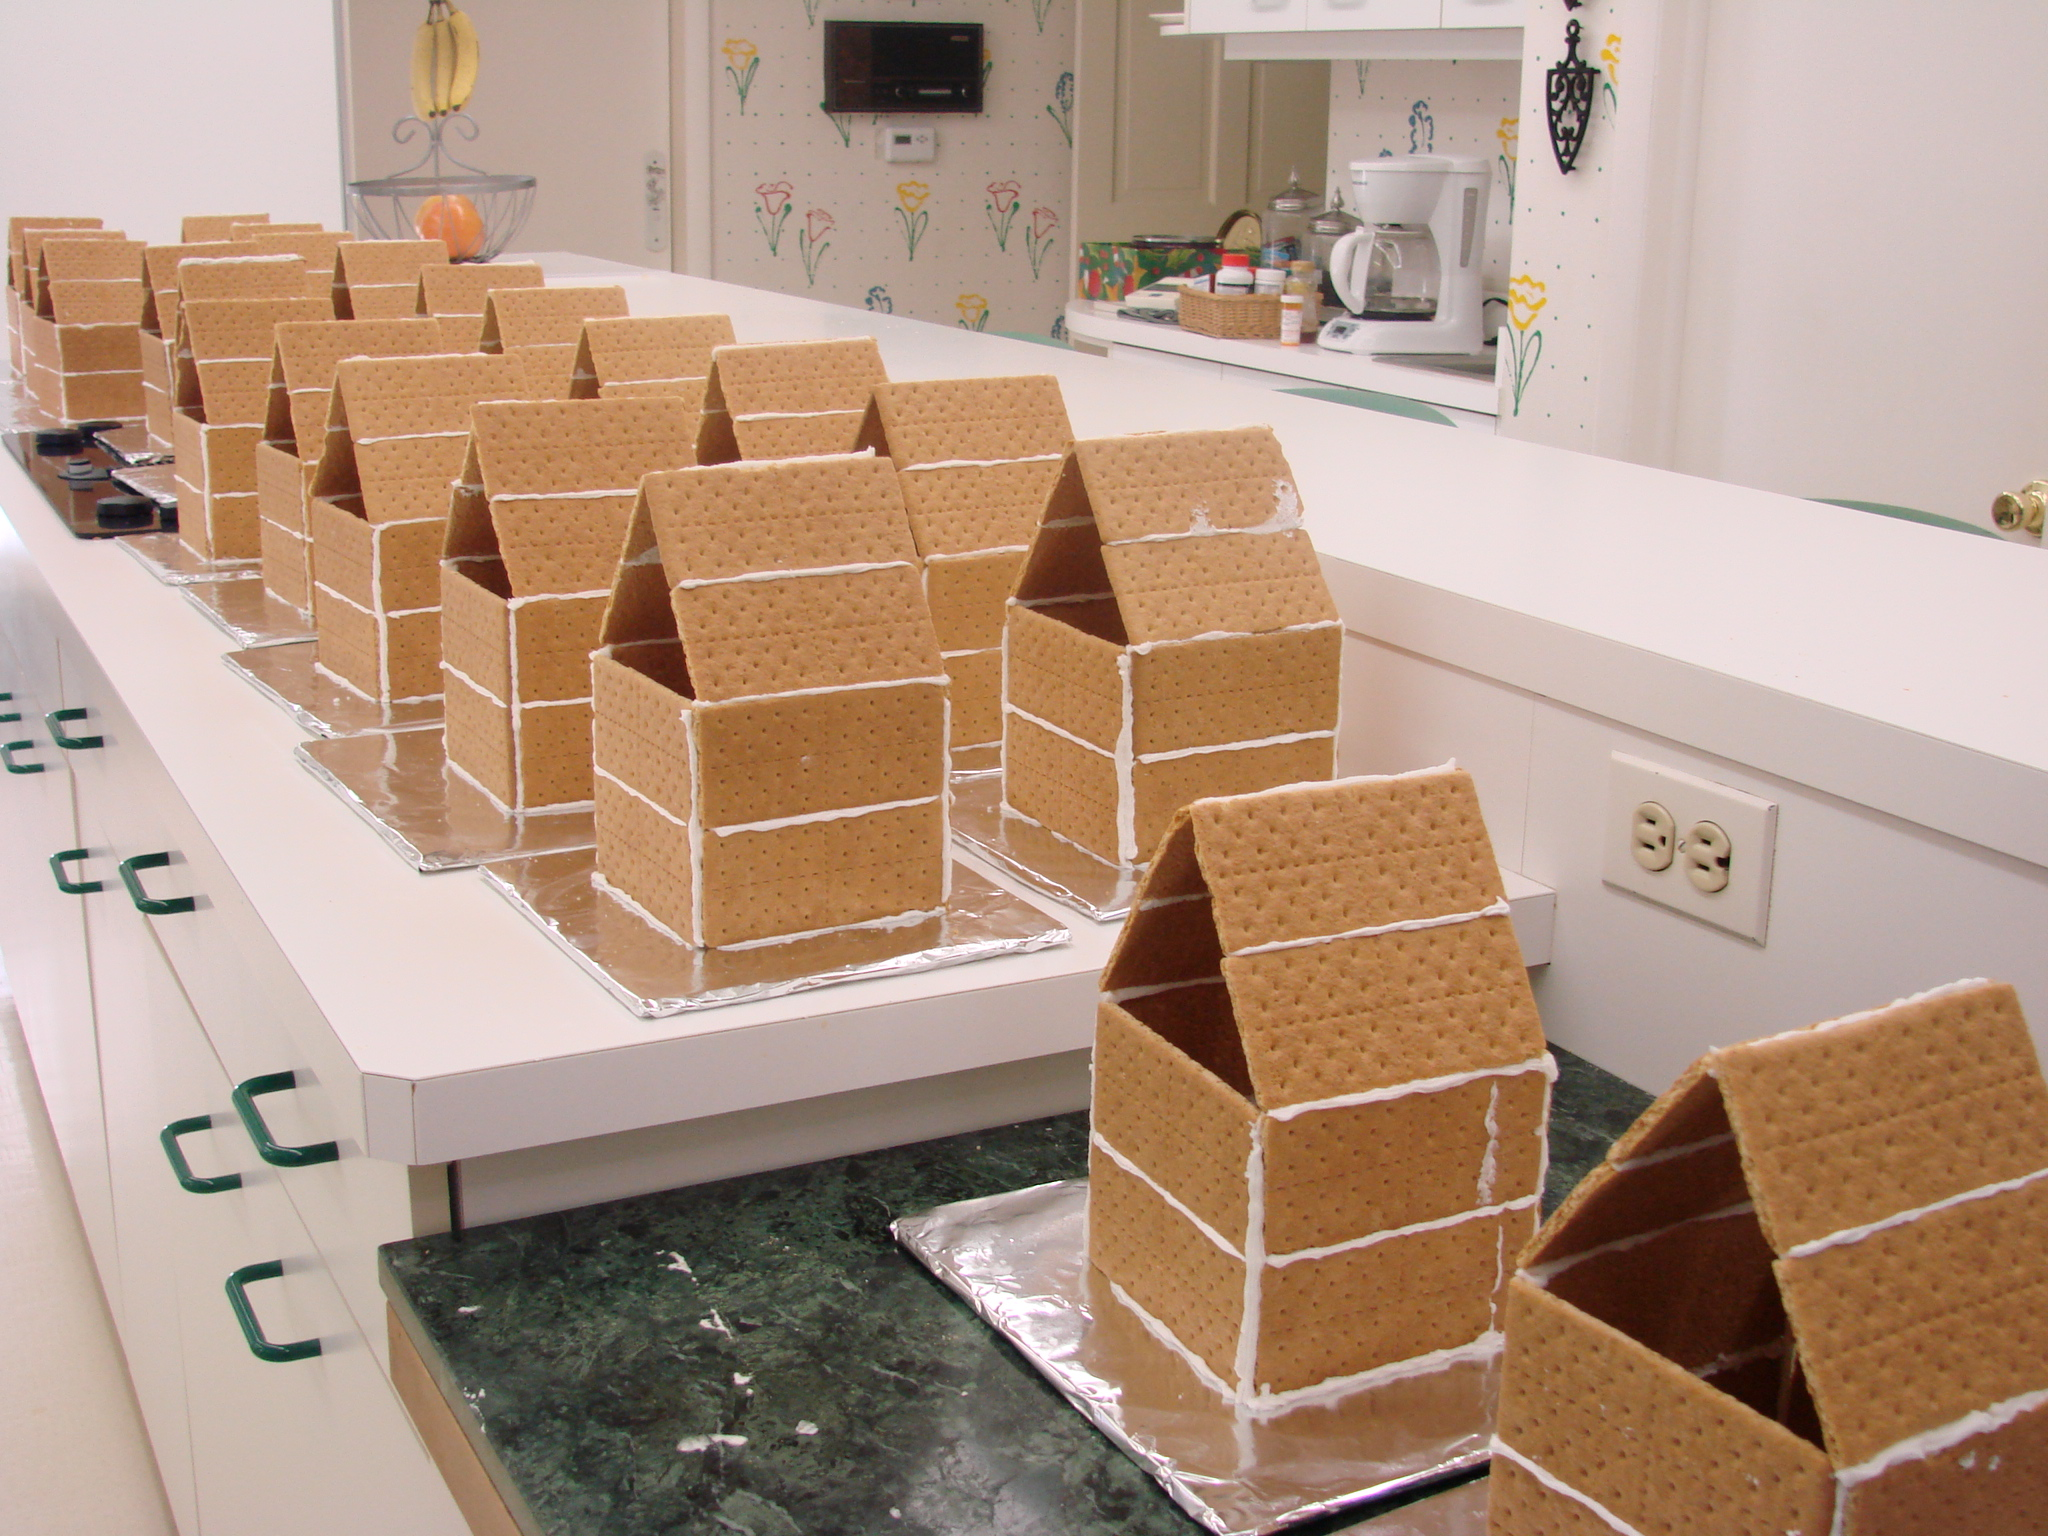 Graham Cracker Houses And Cookies! Maja's Viennese Kitchen